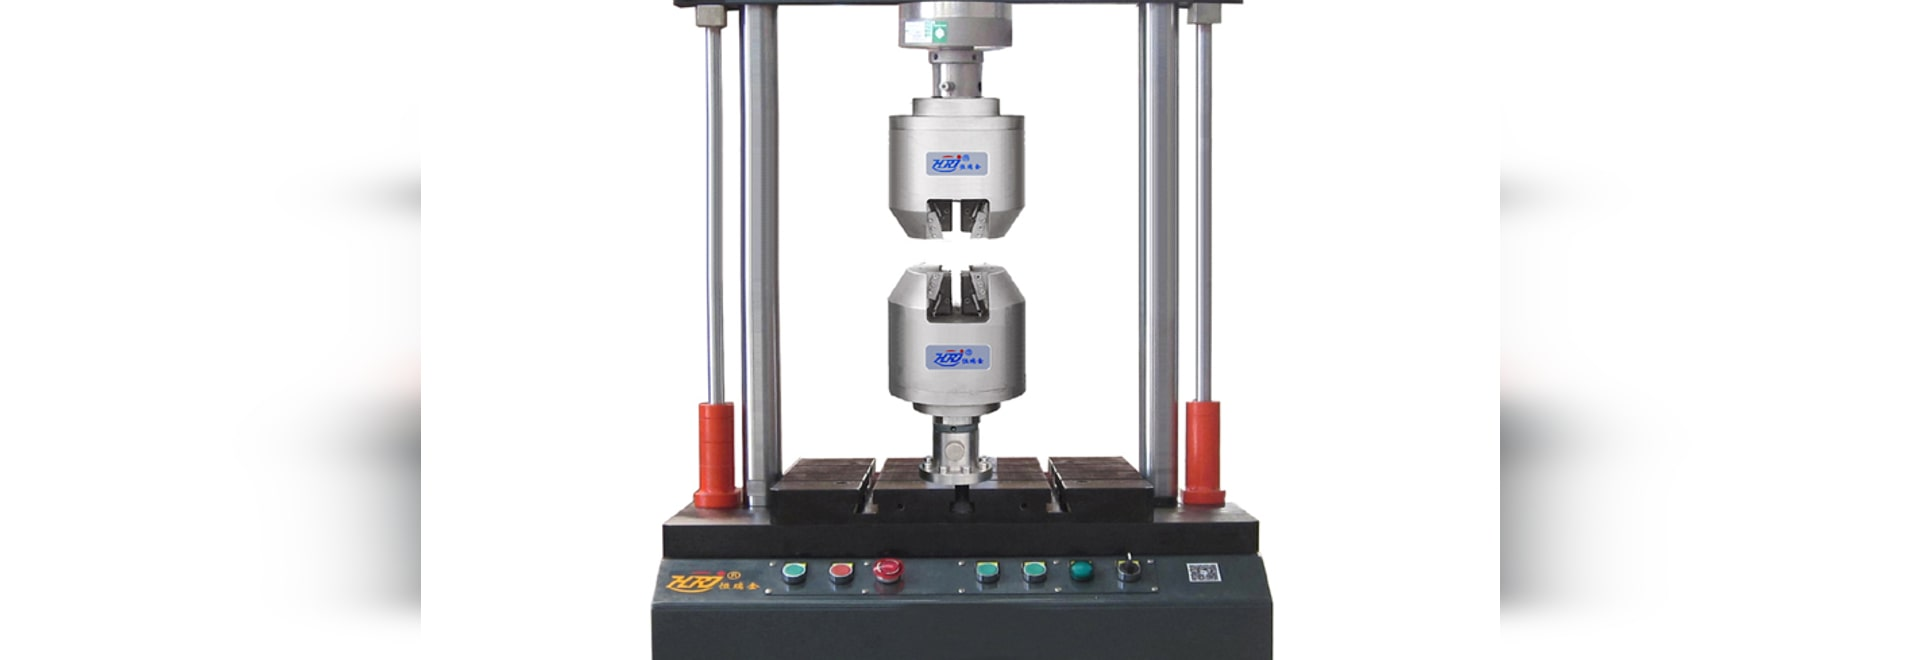 Bone plate bending fatigue testing machine